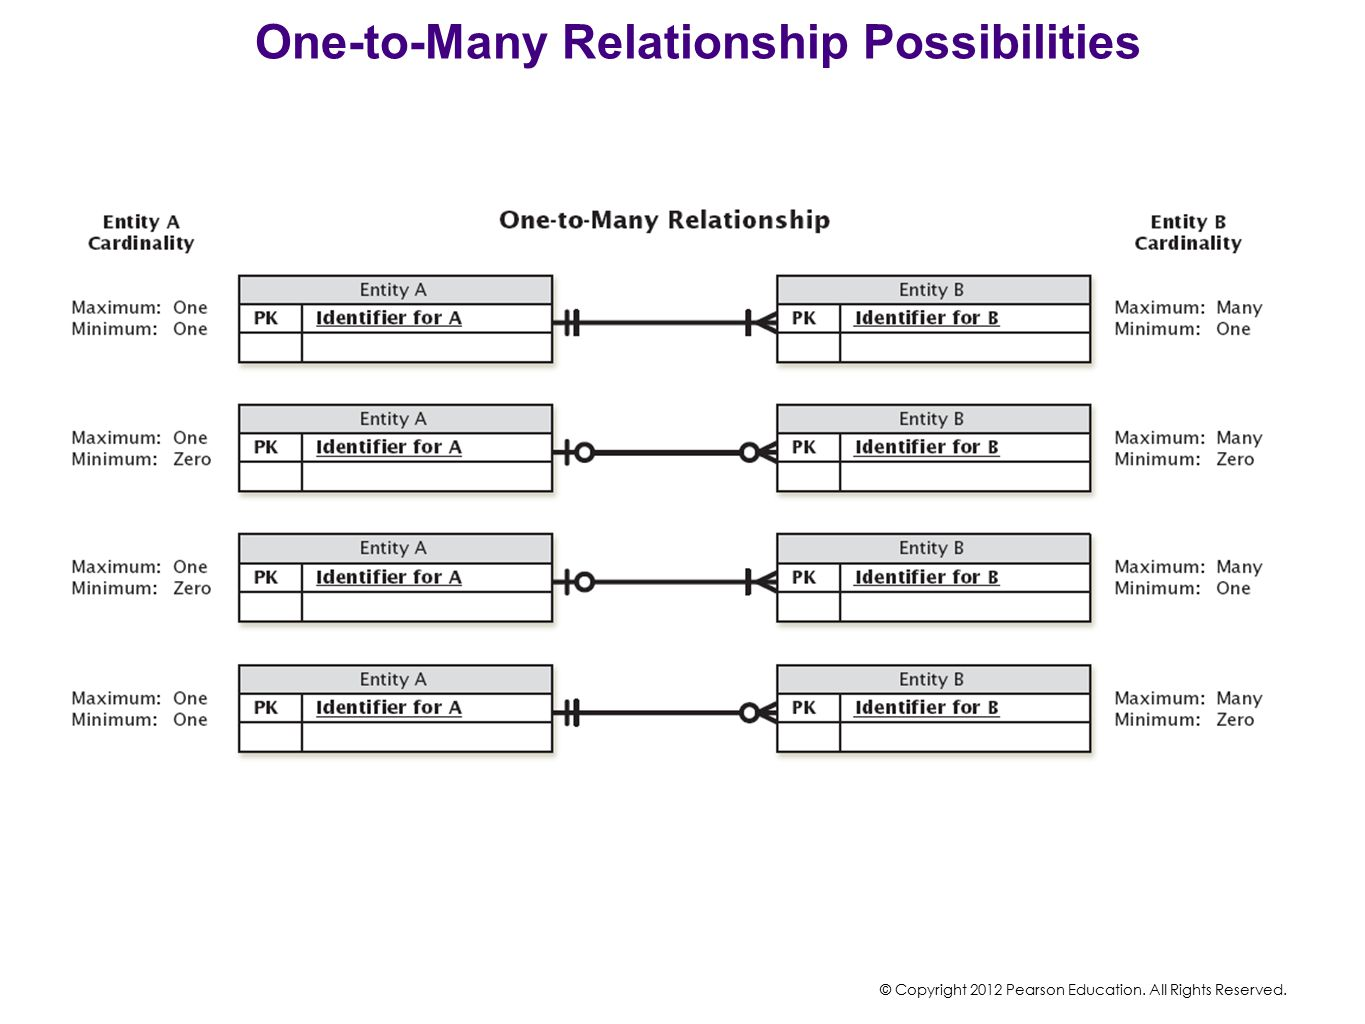 One-to-Many Relationship Possibilities